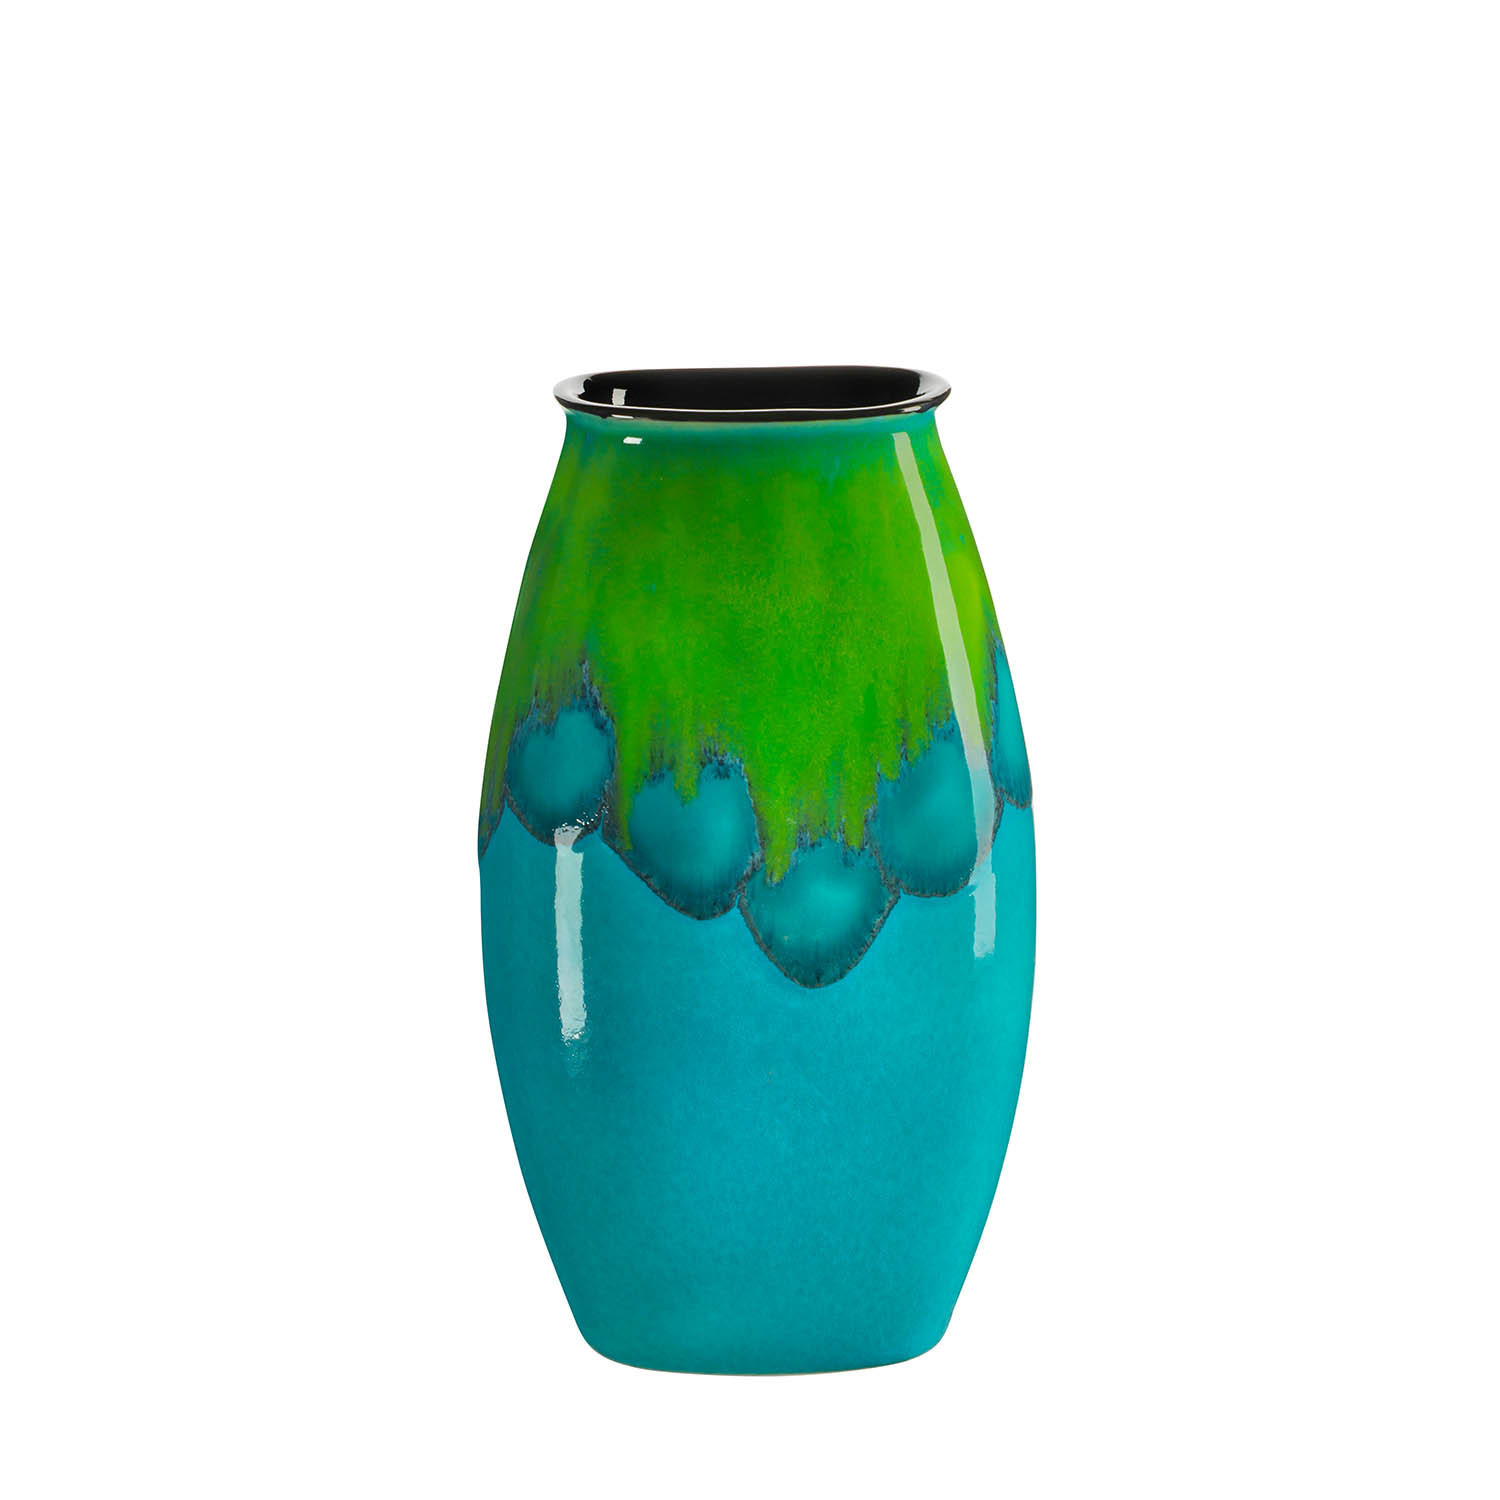 TALLULAH MANHATTON VASE